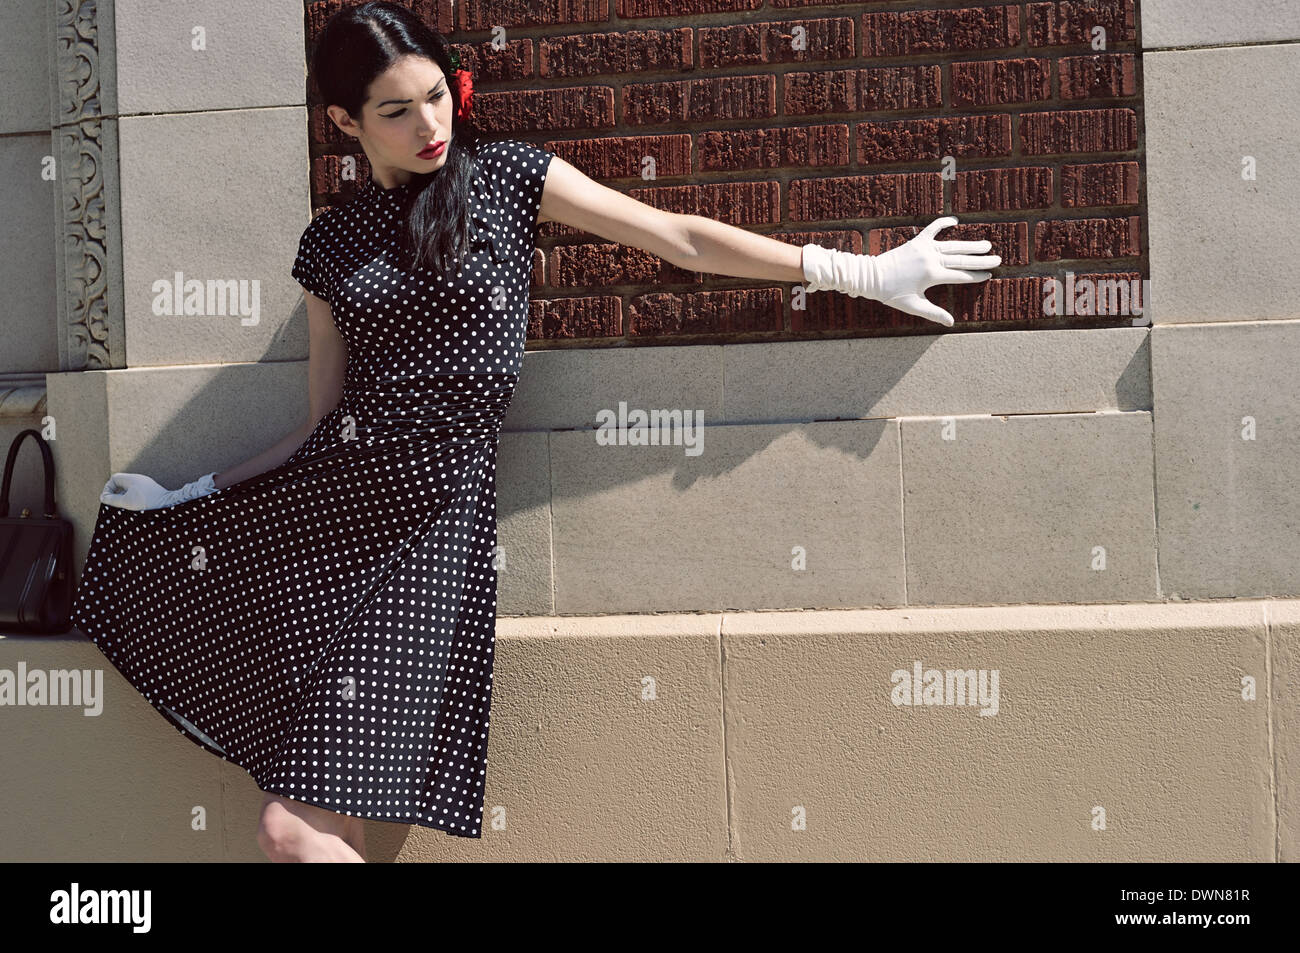 A female model lean against a wall wearing a vintage inspired polka dot dress and white glove holding up her skirt Stock Photo